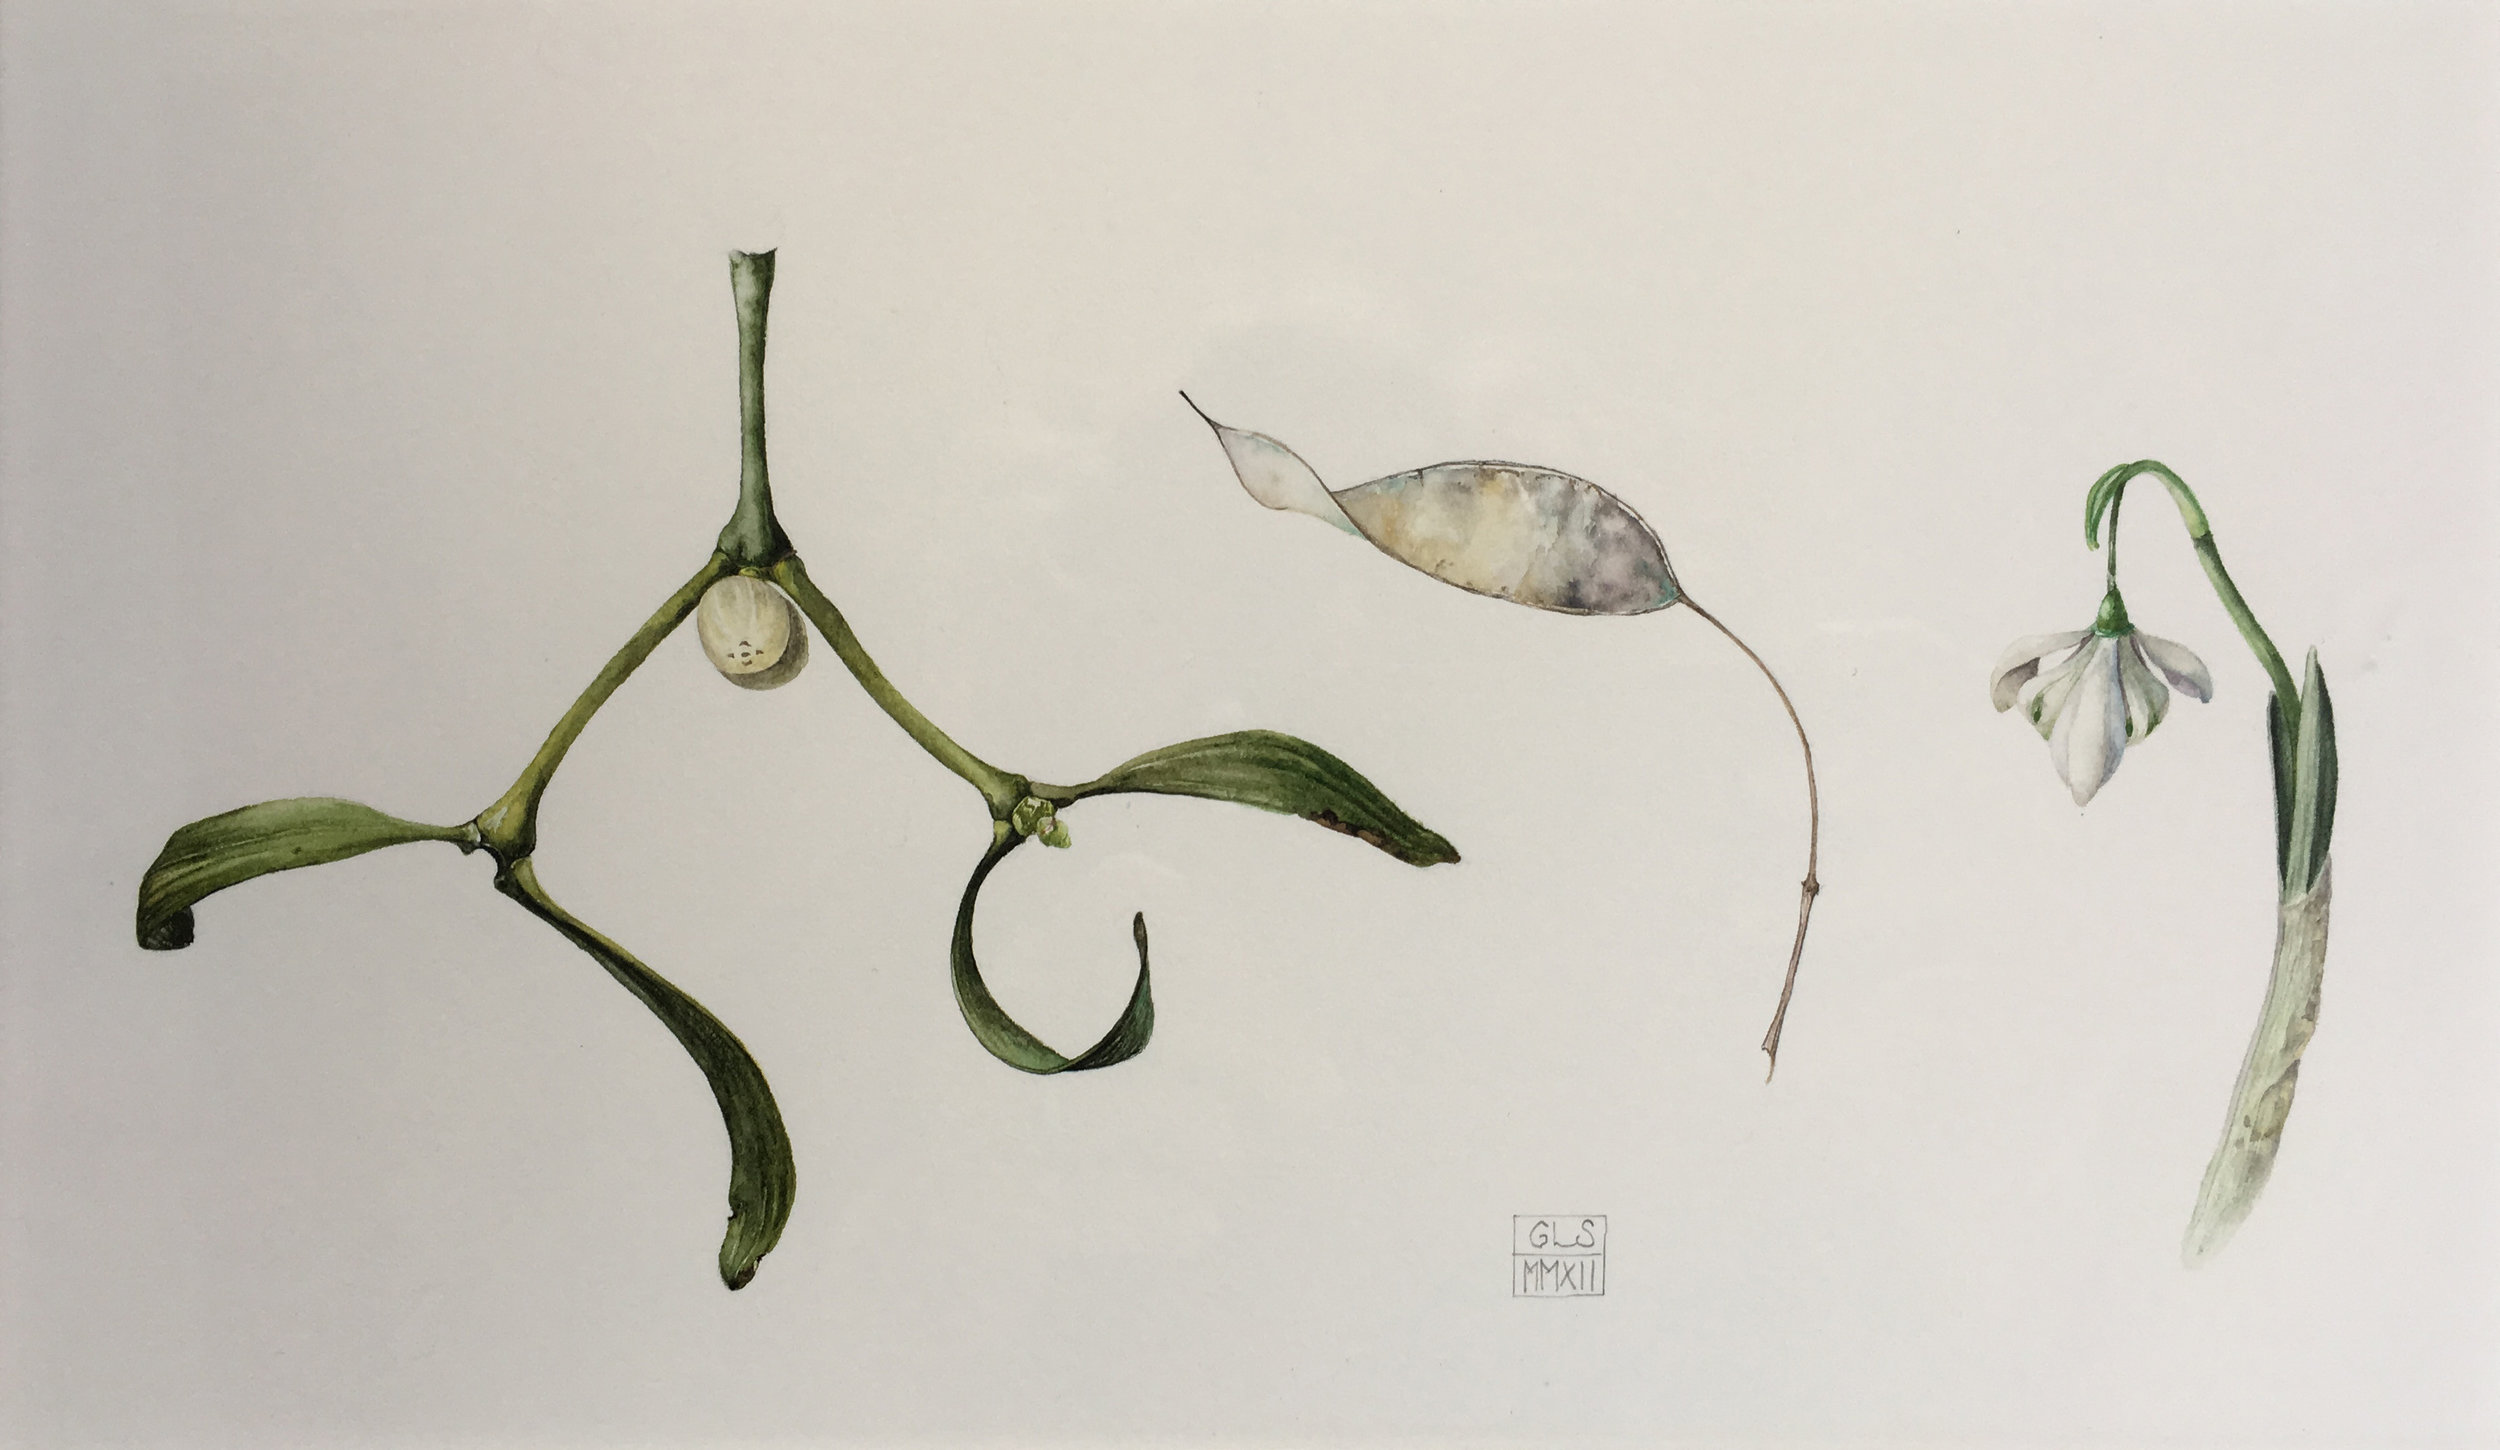 Mistletoe Honesty and Snowdrop  watercolour on paper  25 x 15 cm image  48 x 38 cm framed  SOLD